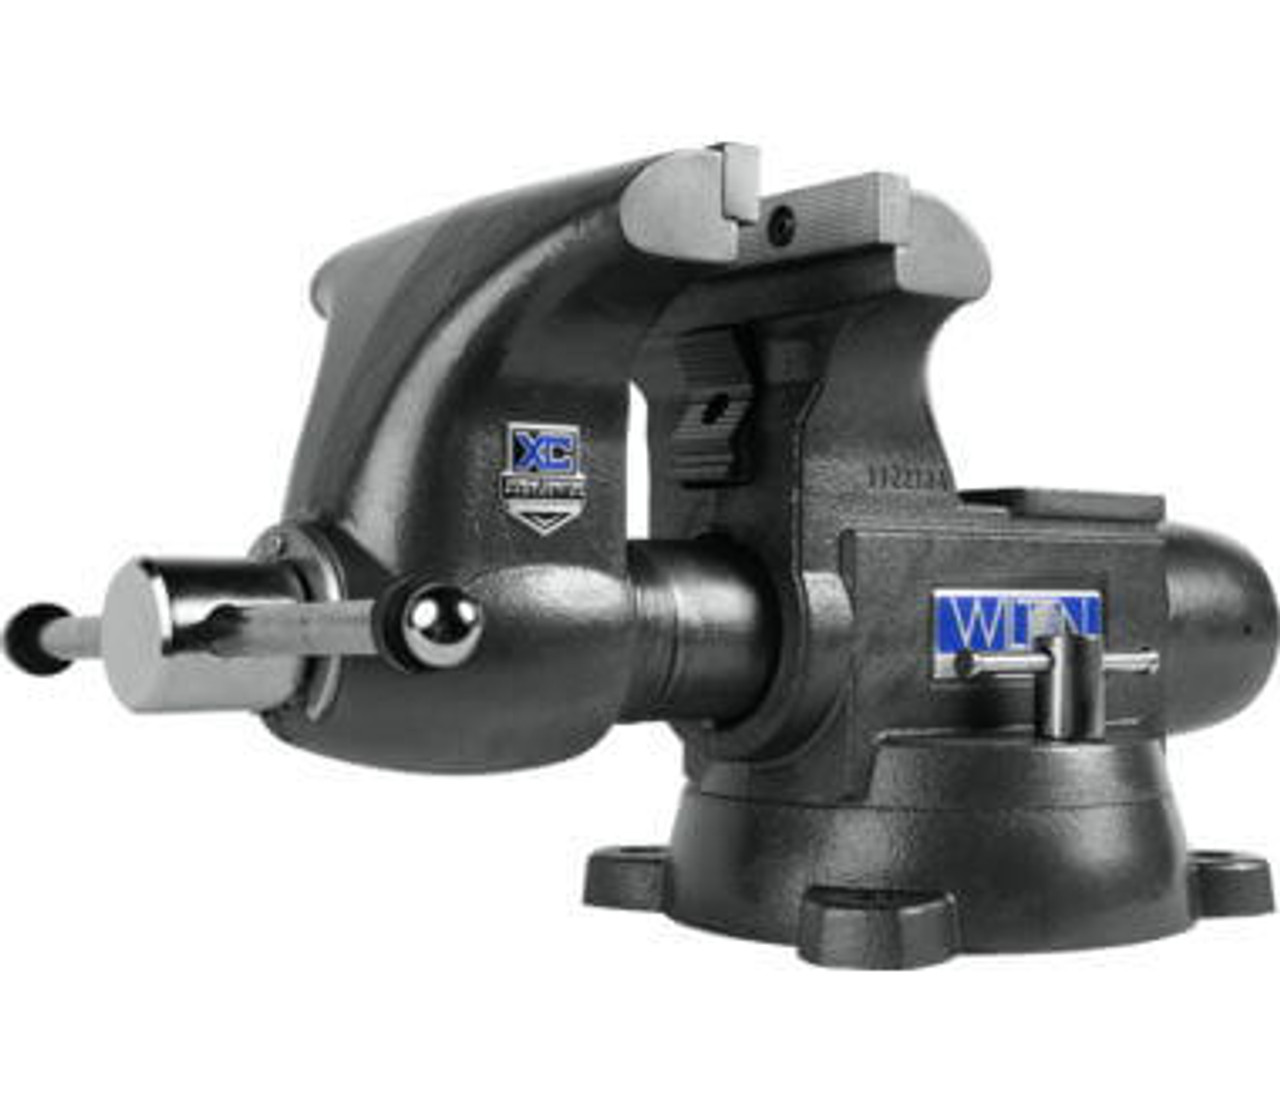 Phenomenal Wilton 1780Xc 8 Tradesman Xtreme Conditions Bench Vise Short Links Chair Design For Home Short Linksinfo